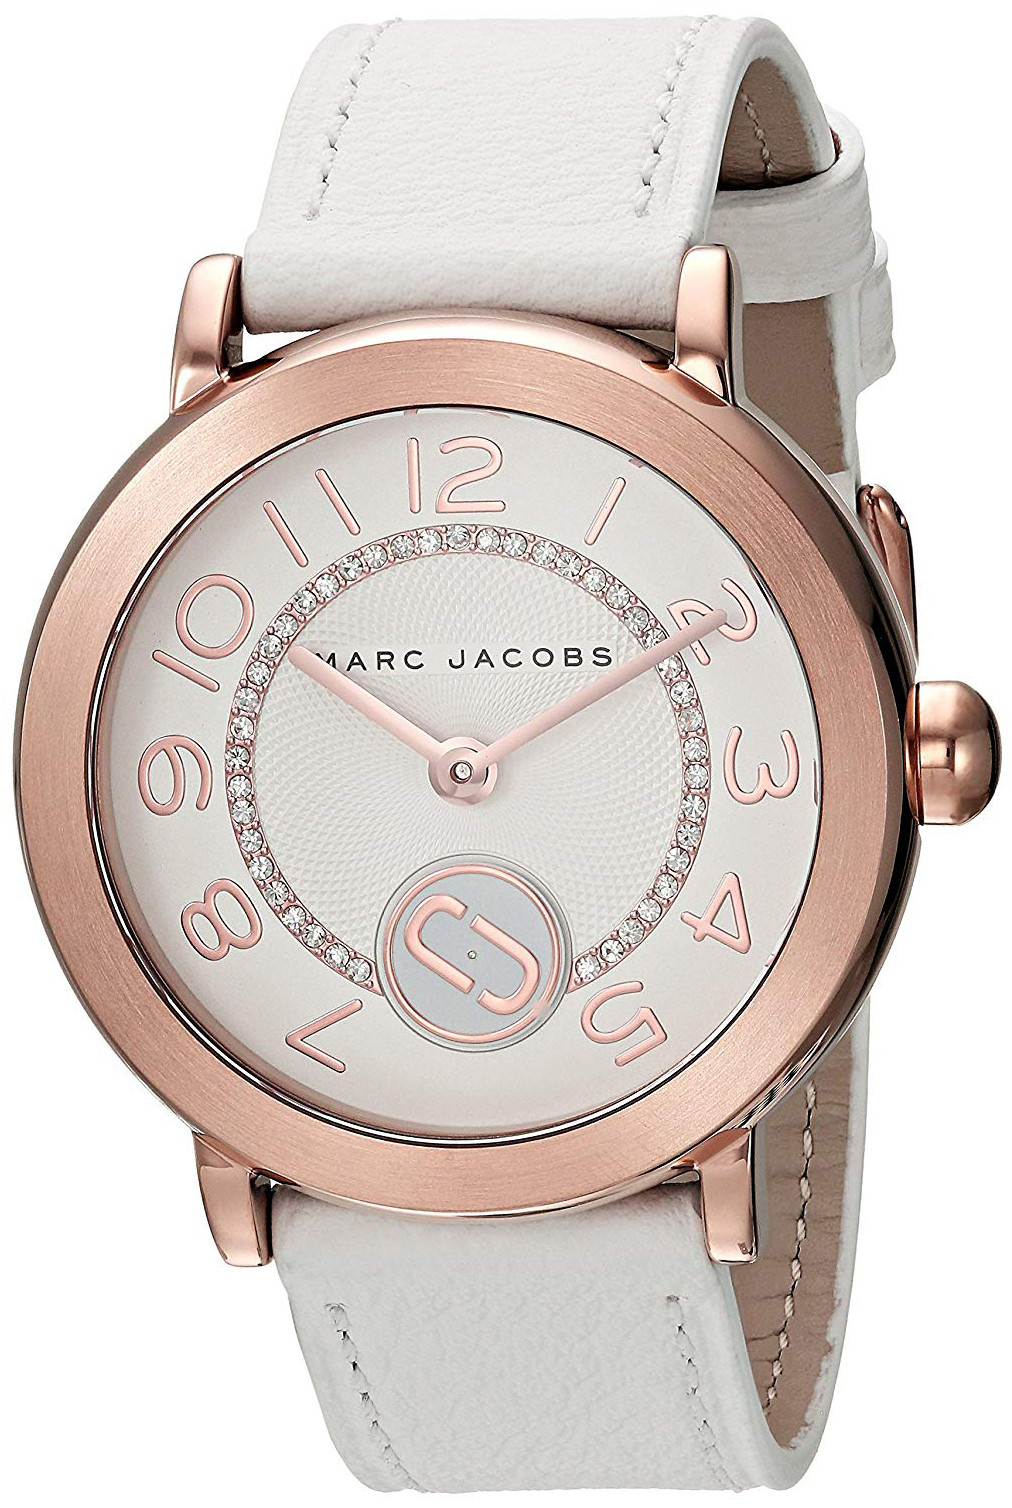 Marc by Marc Jacobs Riley Dameklokke MJ1616 Hvit/Lær Ø36 mm - Marc by Marc Jacobs